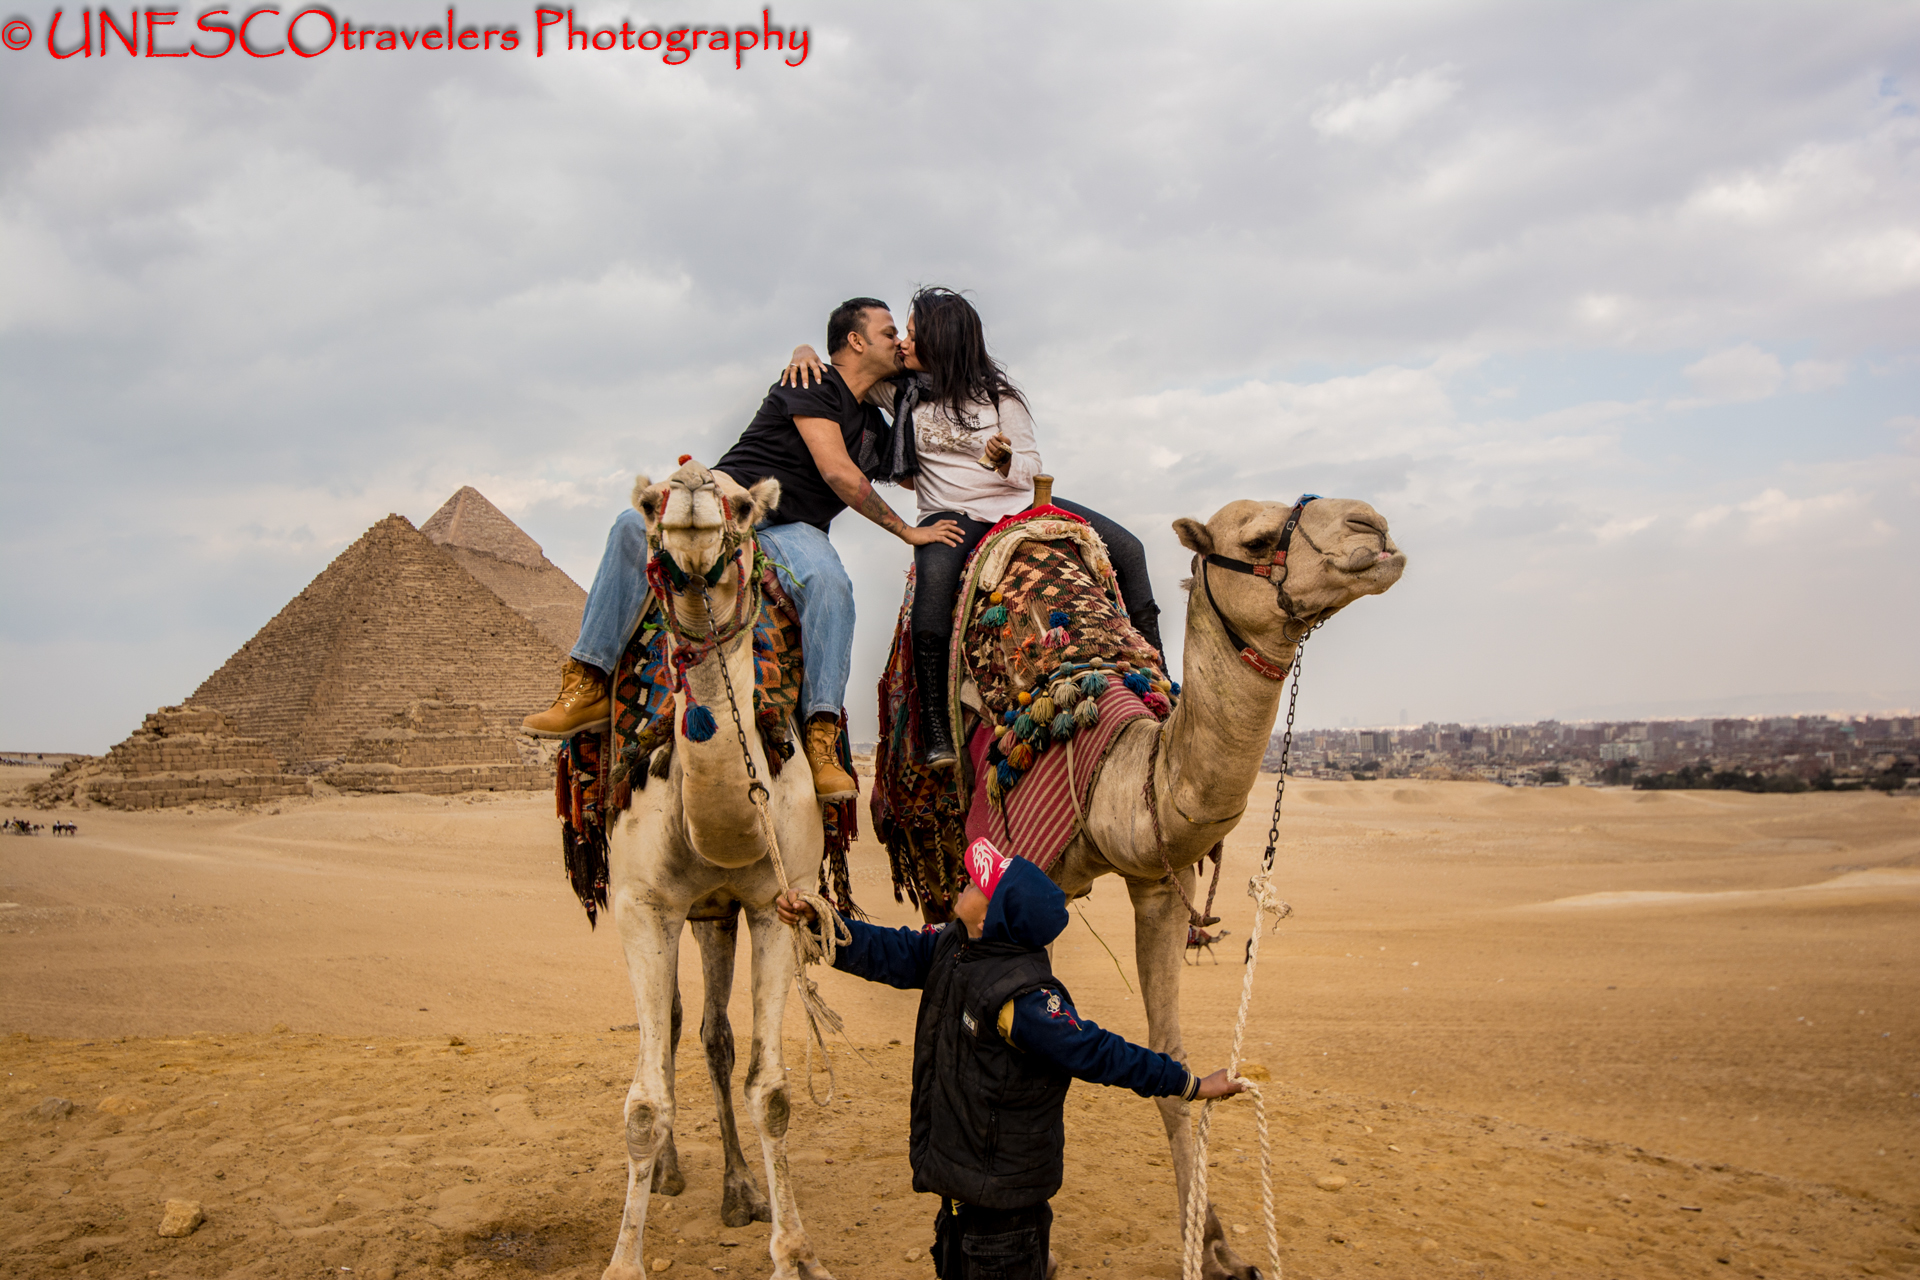 "The Pyramids of Giza @ Cairo, Egypt Memphis and its Necropolis -€"" the Pyramid Fields from Giza to Dahshur - Egypt By UNESCOtravelers"